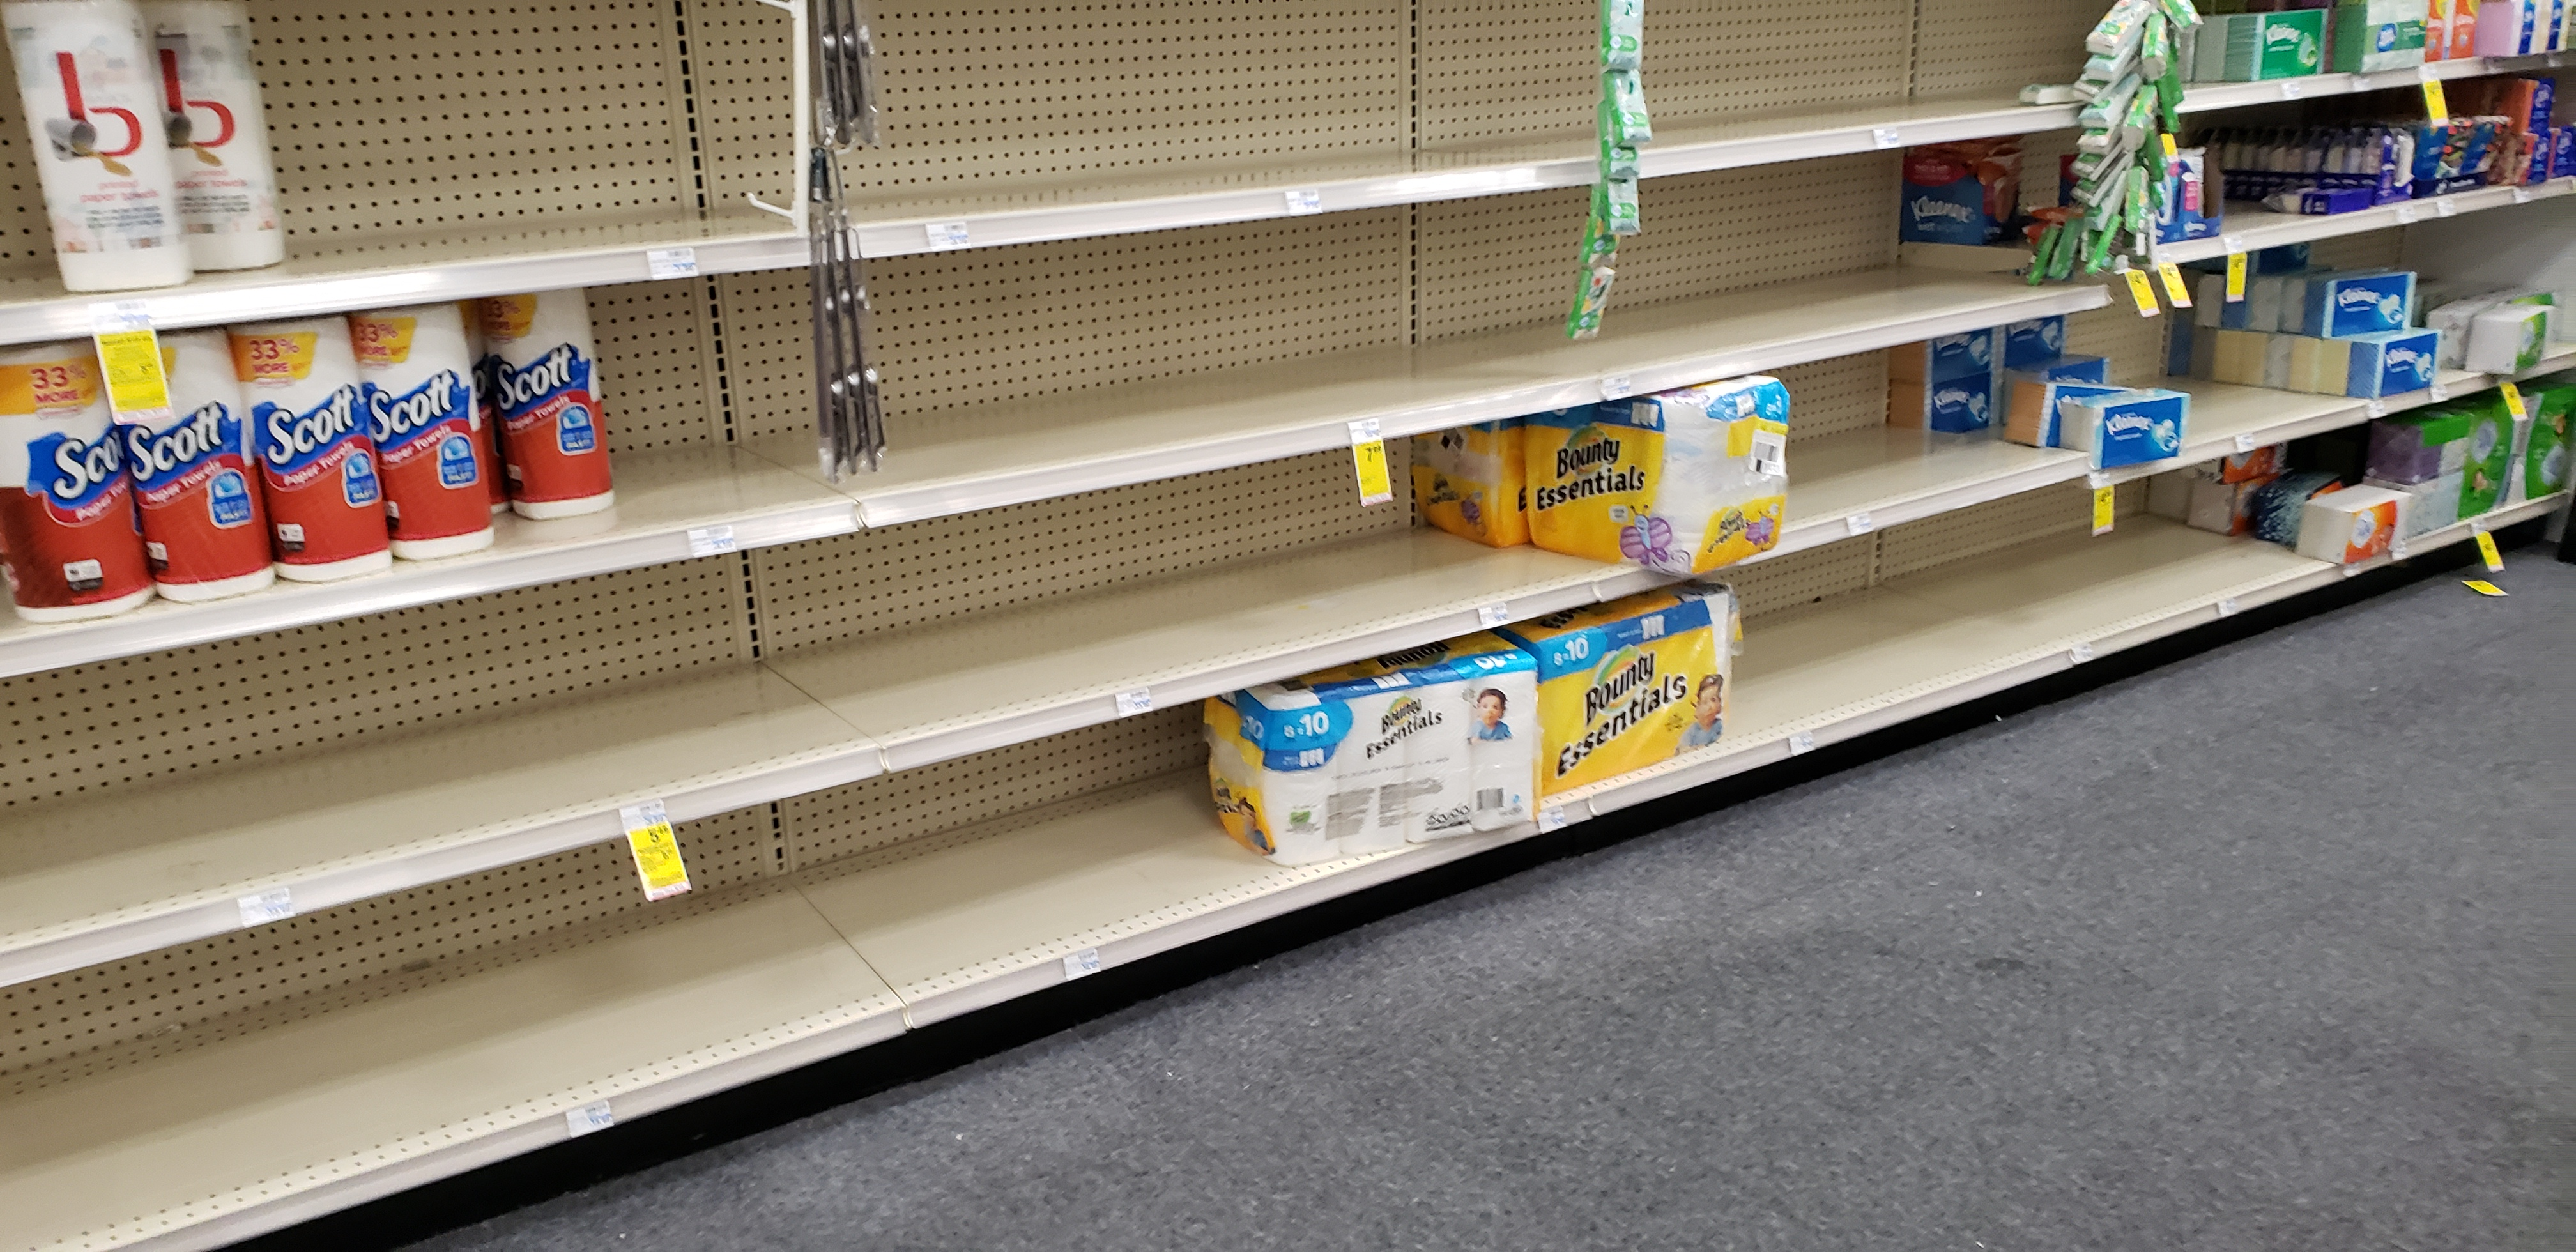 More Signs The Clock Is Ticking And Americans Only Have A Limited Window To Get Ready: Once The Food Crisis Hits, It Will Already Be Too Late To Prepare For The Erupting Chaos, Totalrehash.com